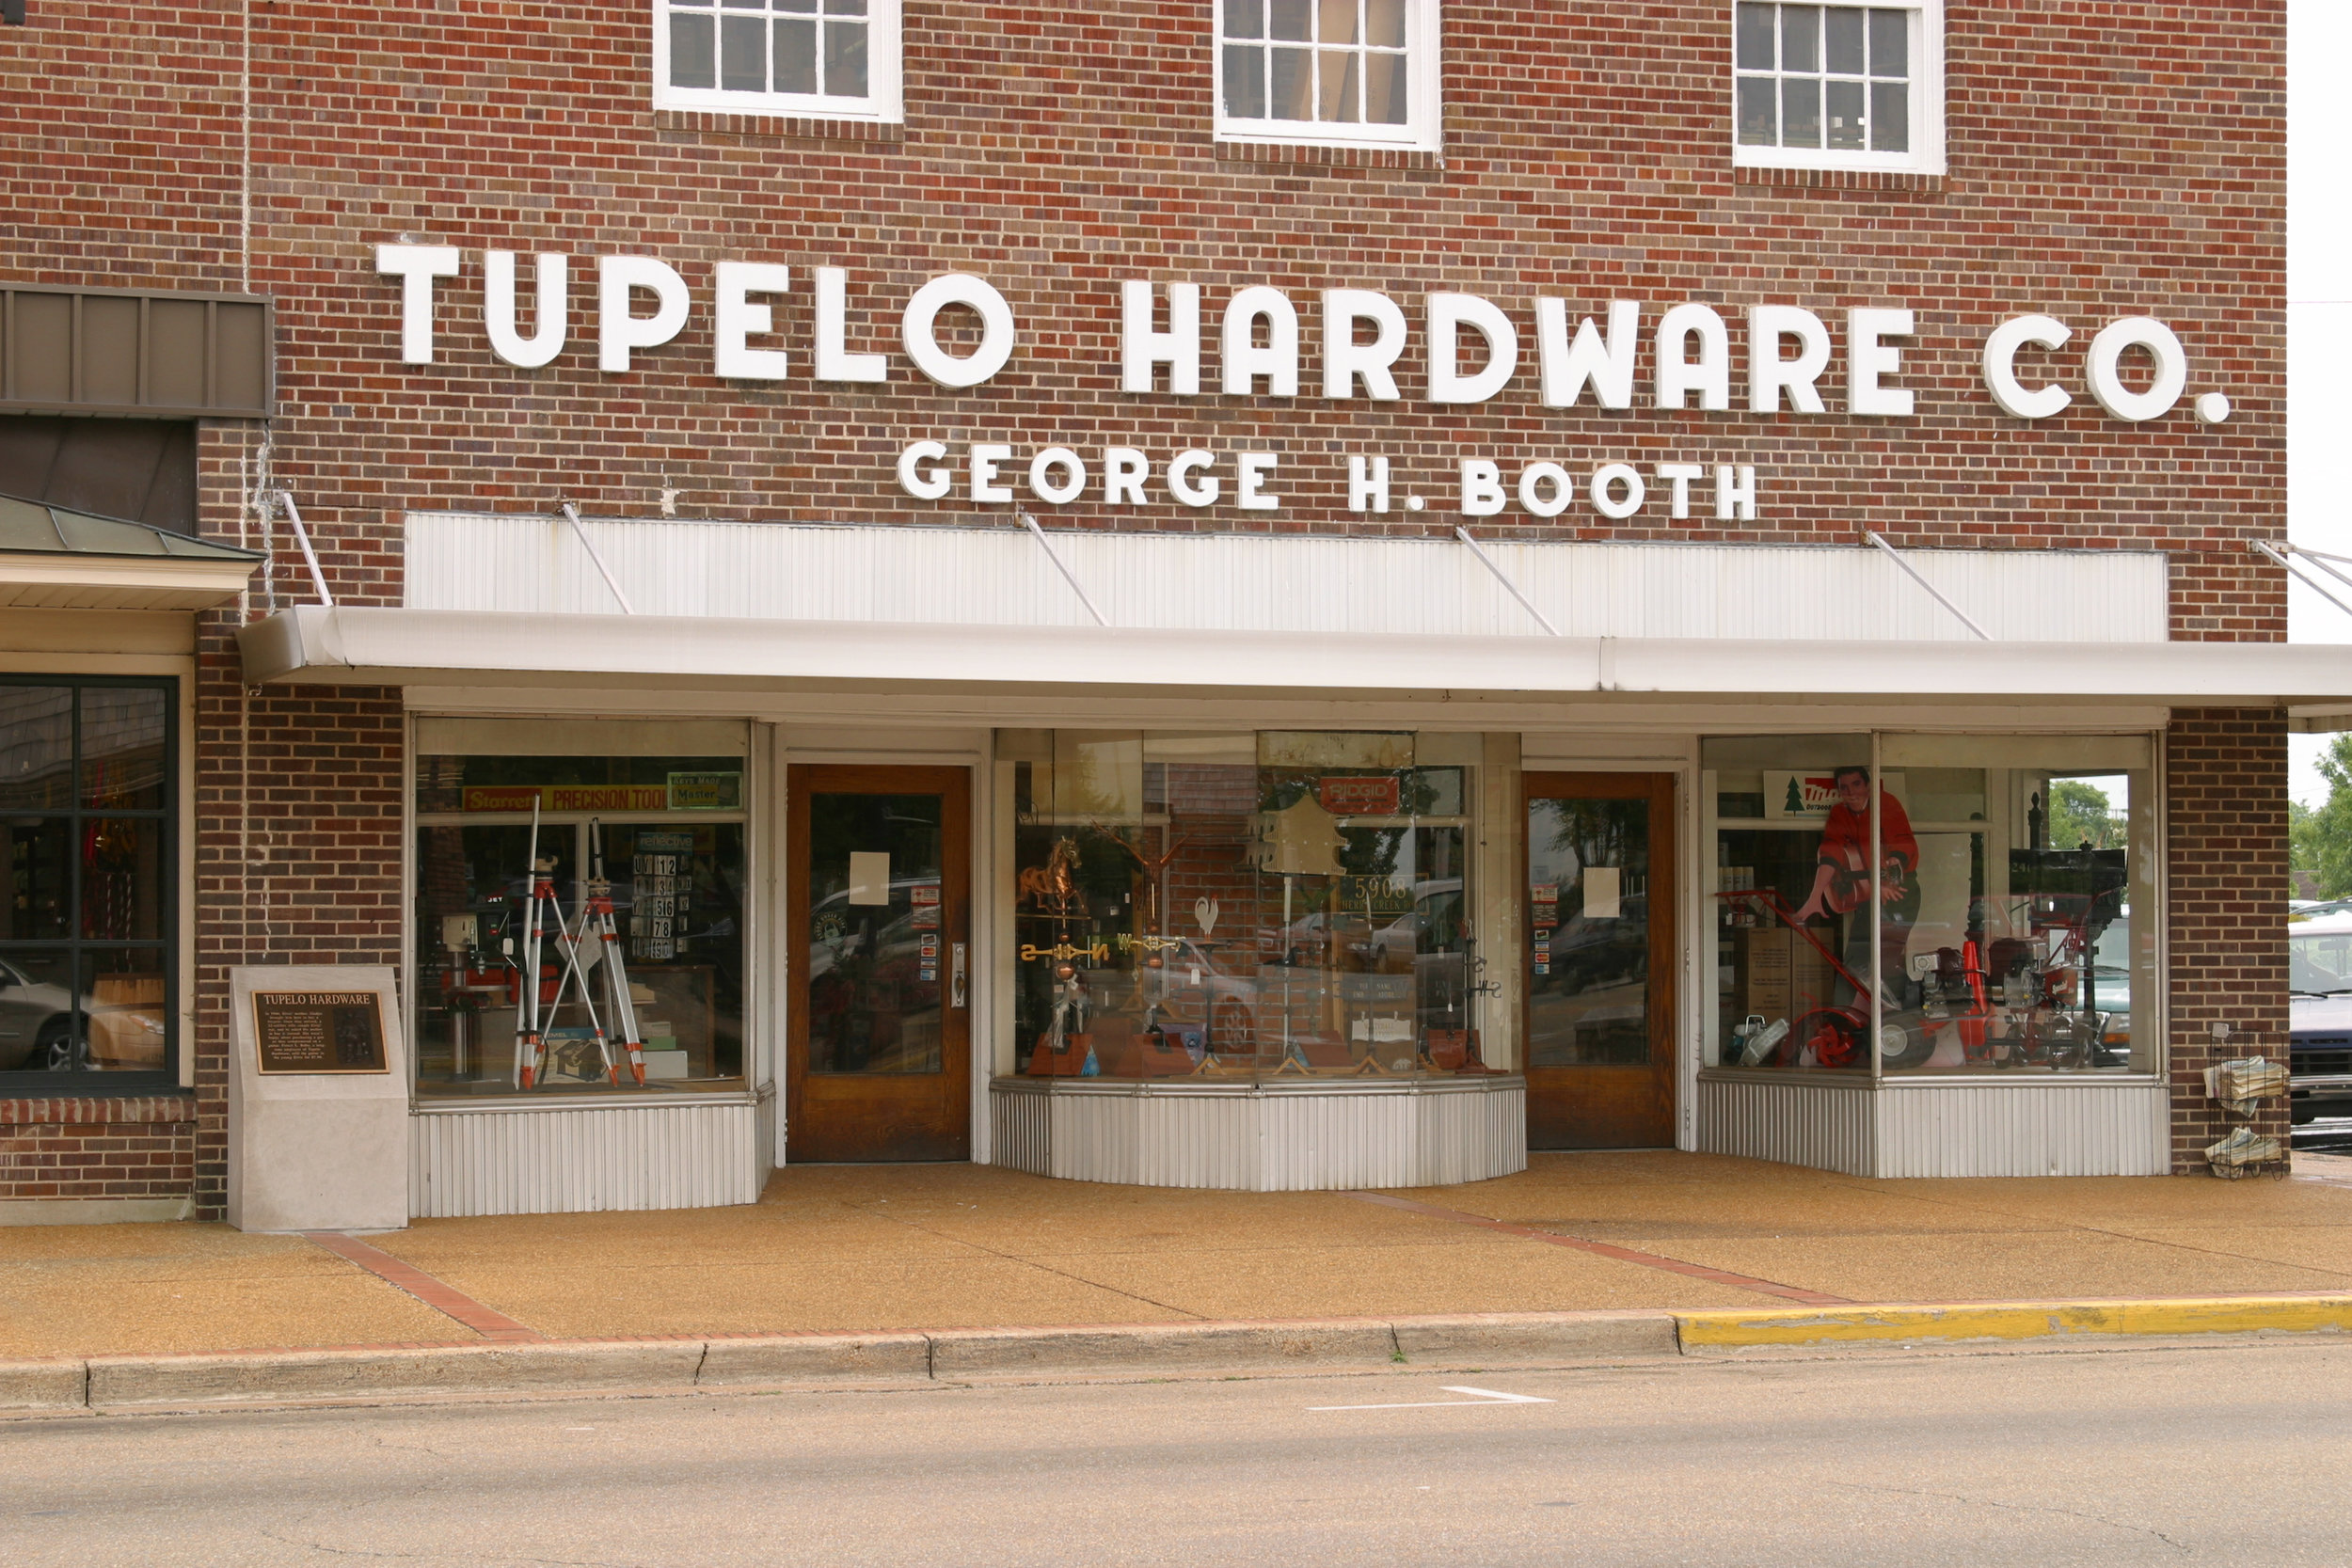 Tupelo Hardware Co., where Elvis purchased his first guitar